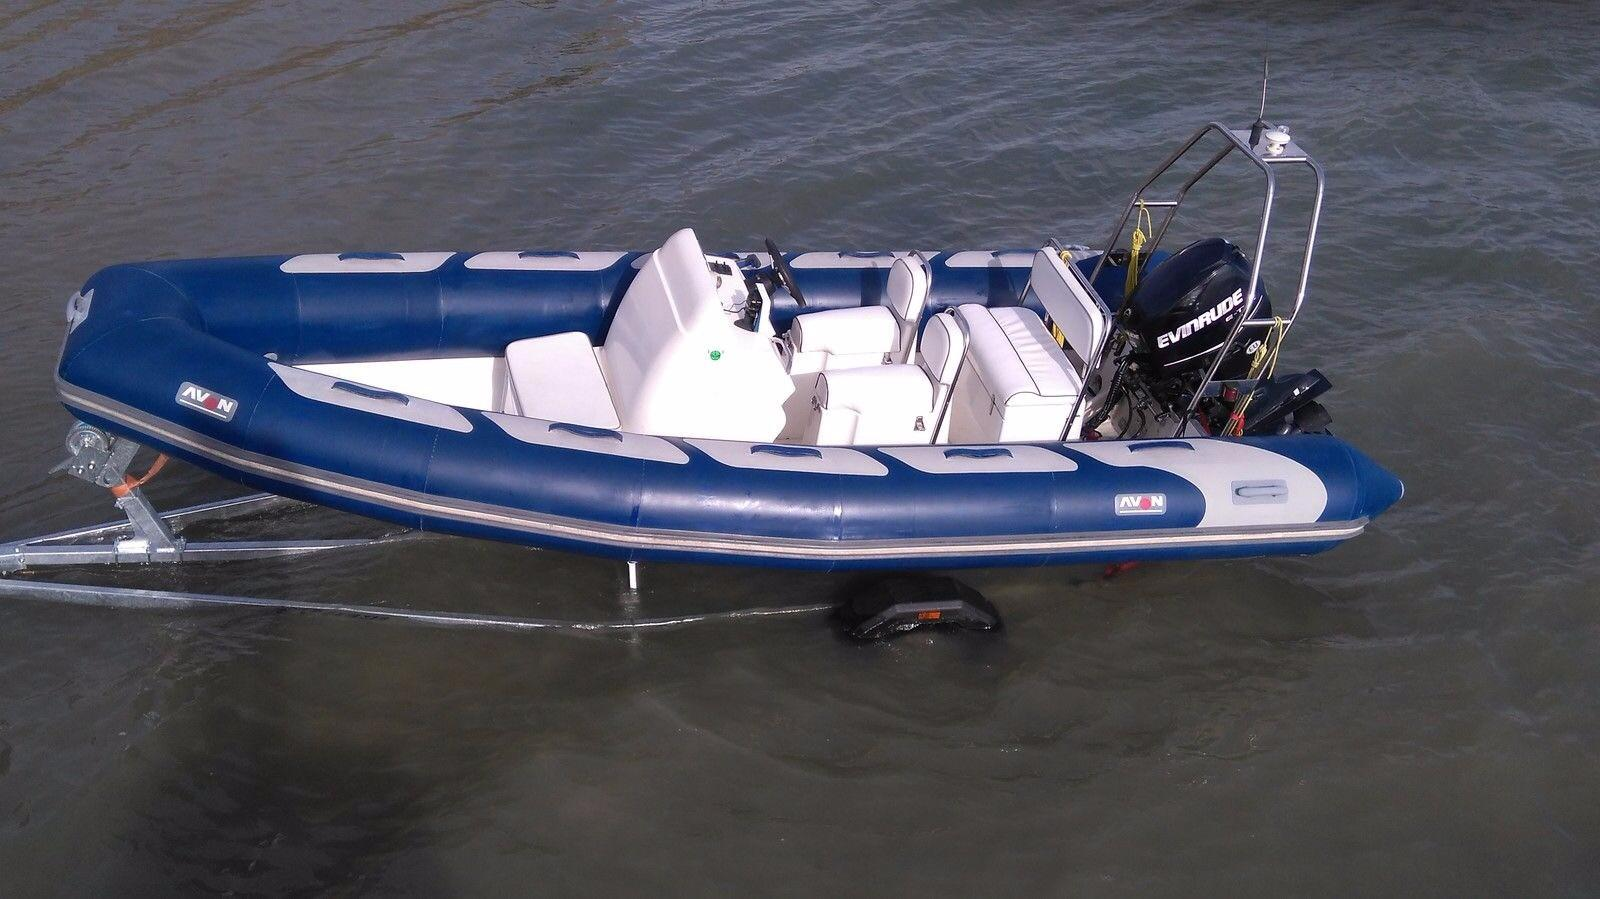 2005 Avon Adventure 560 Open Power Boat For Sale Www